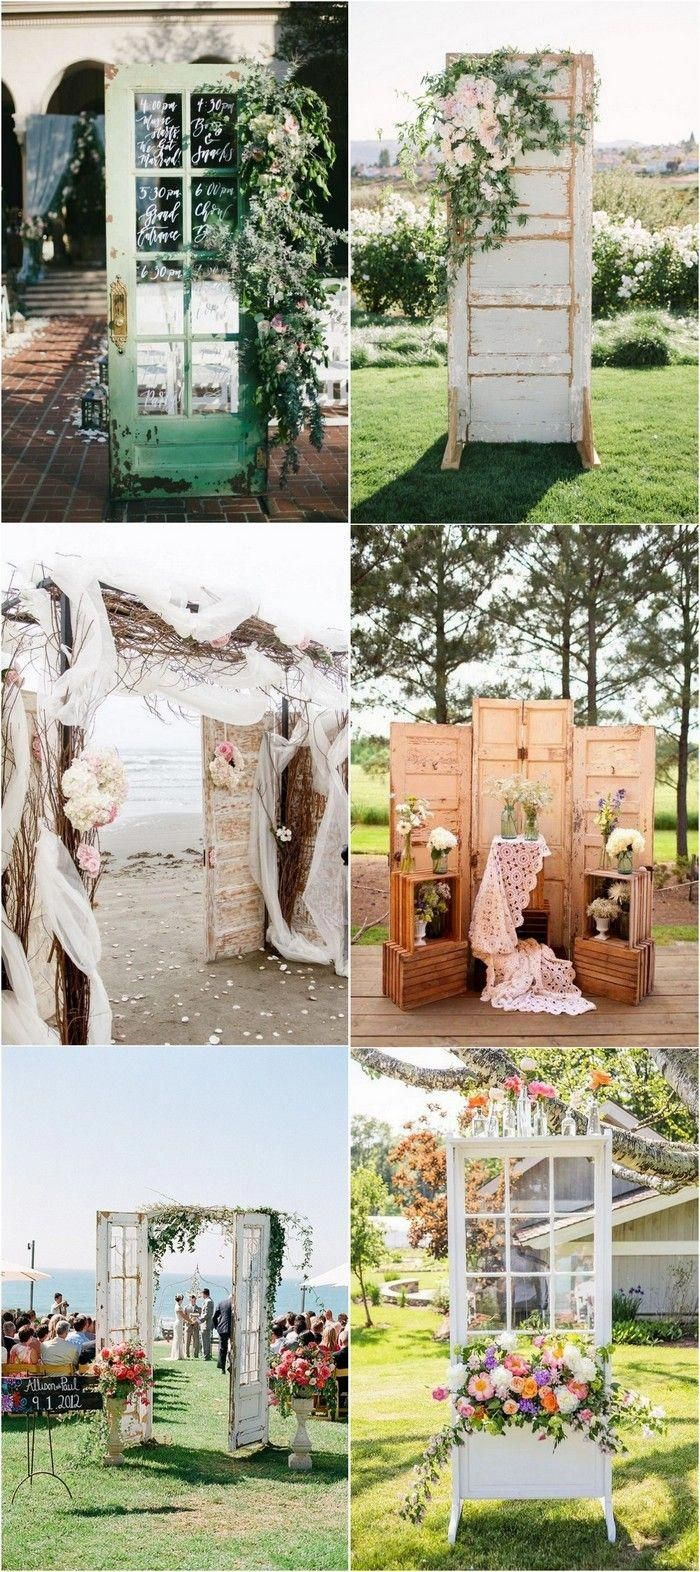 Wow Love these country wedding ideas..